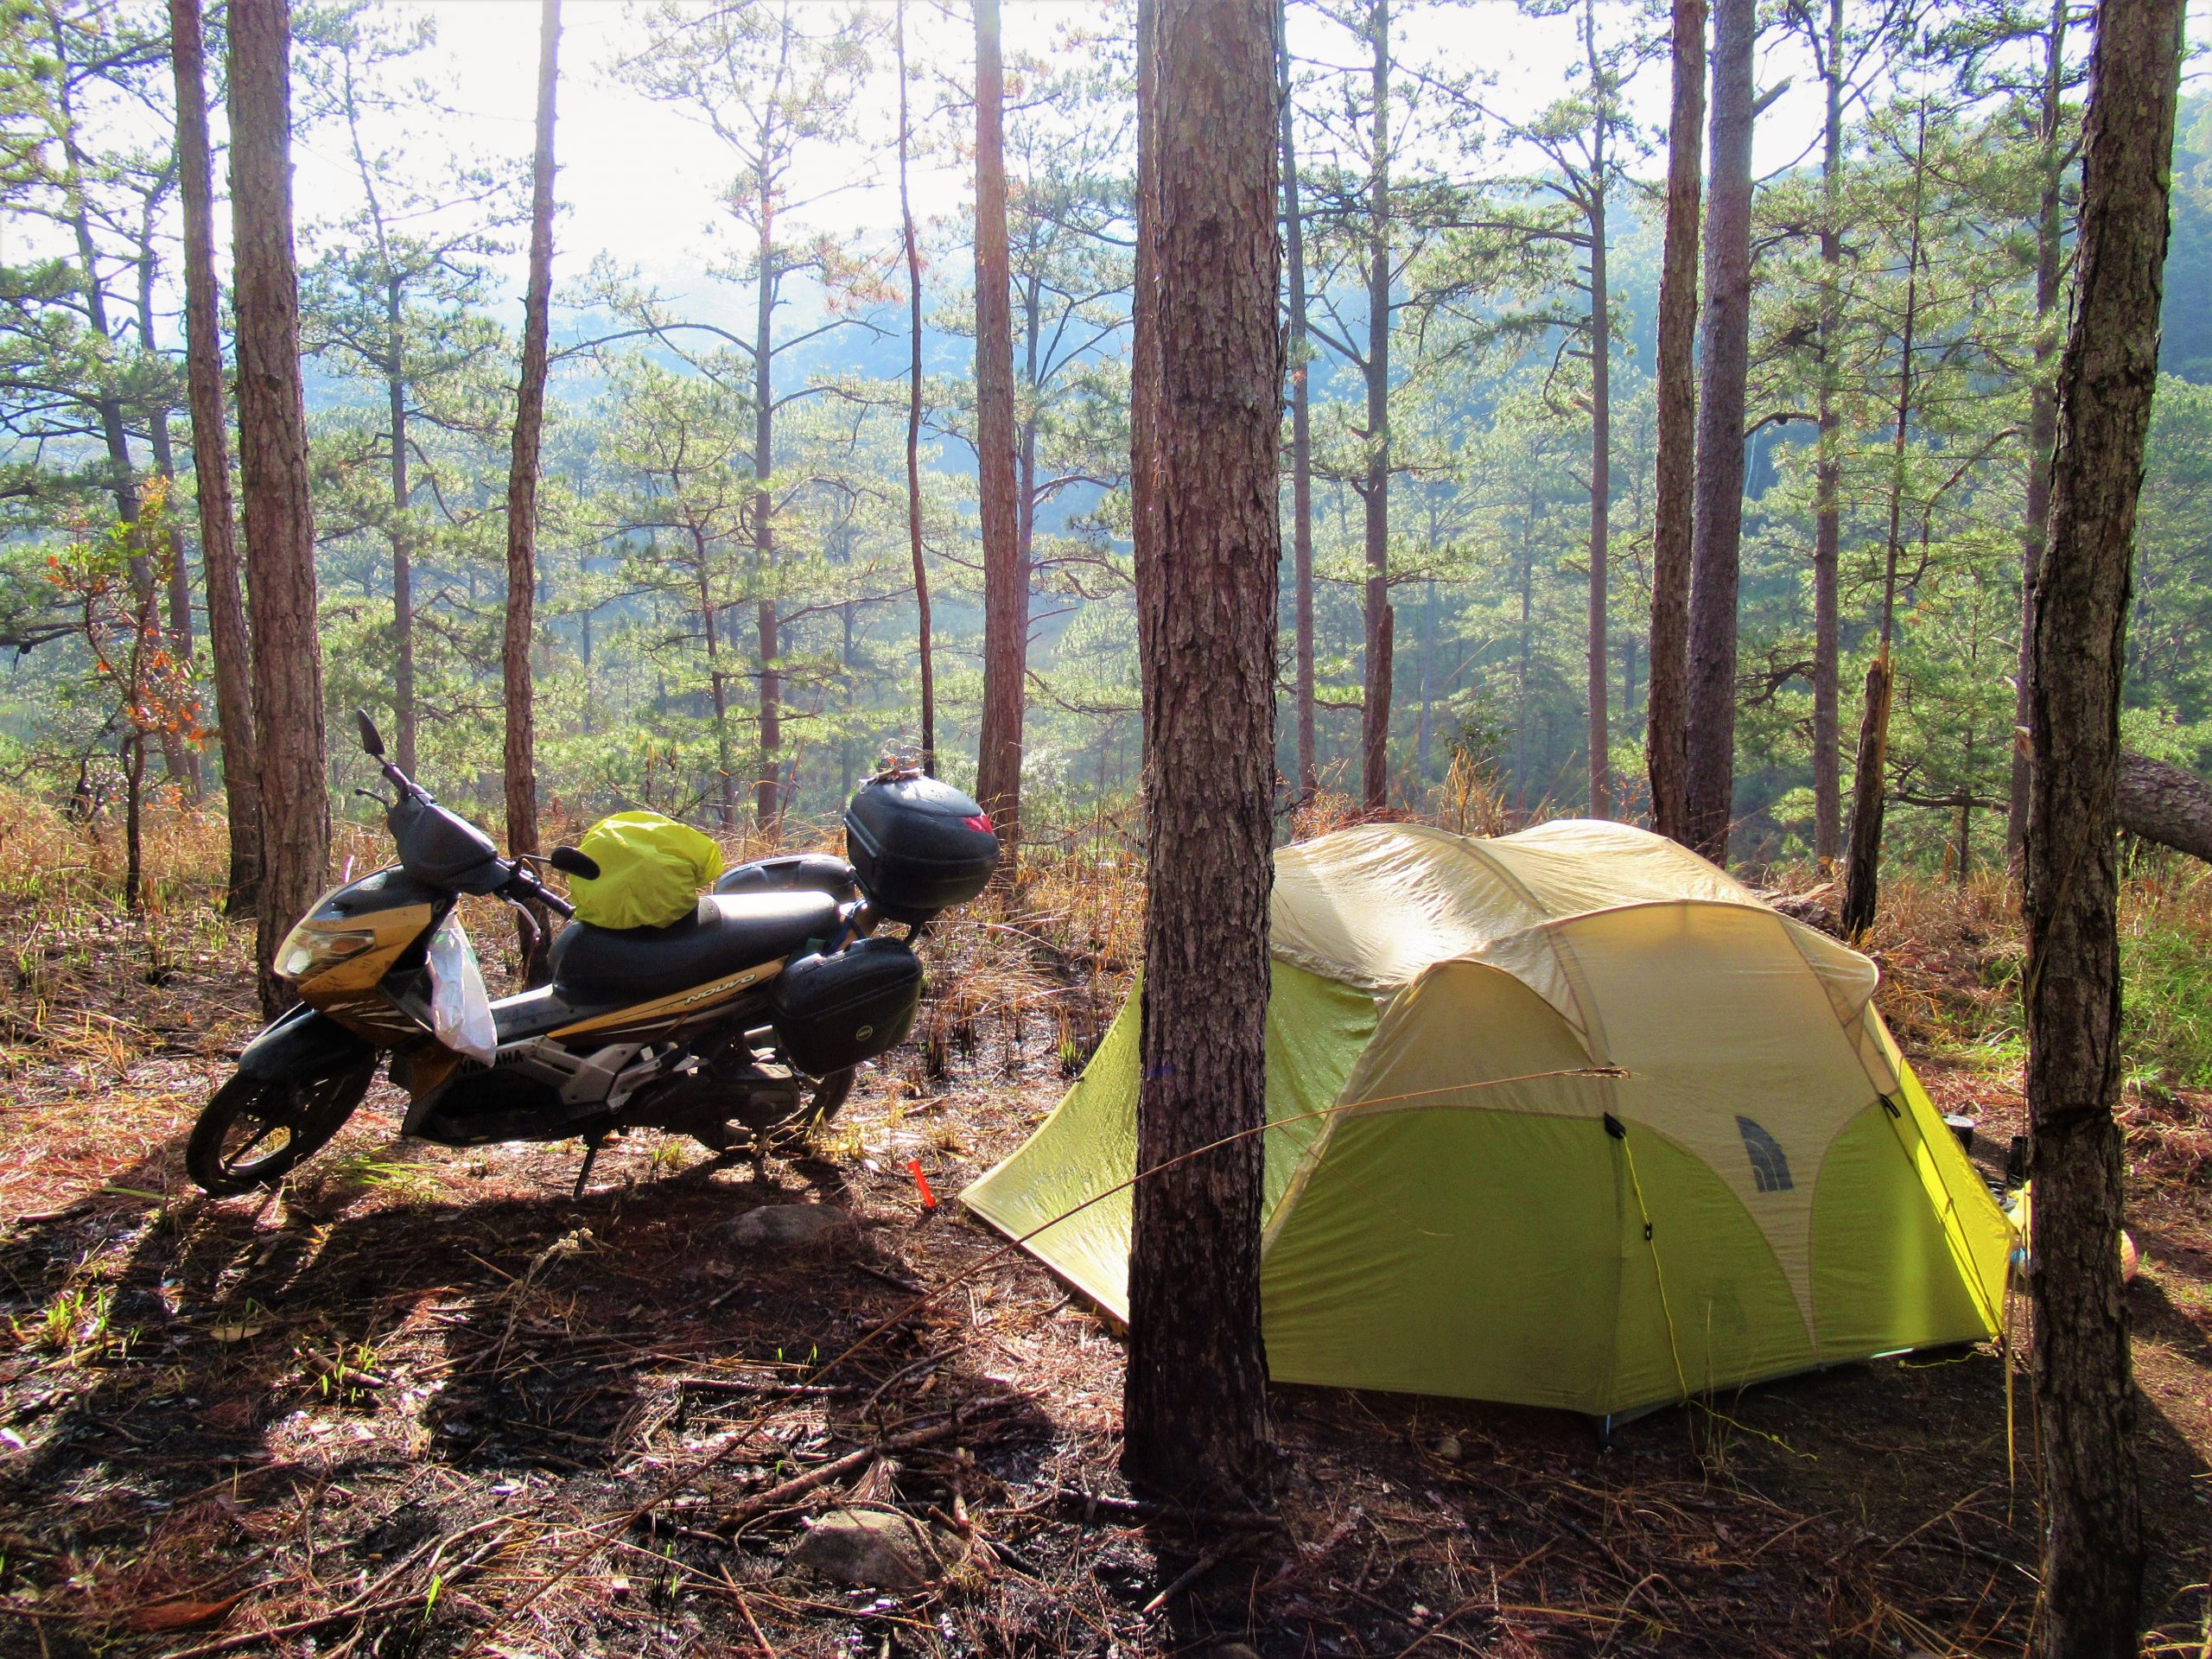 Motocamping in the pine forests of Da Nhin, Central Highlands